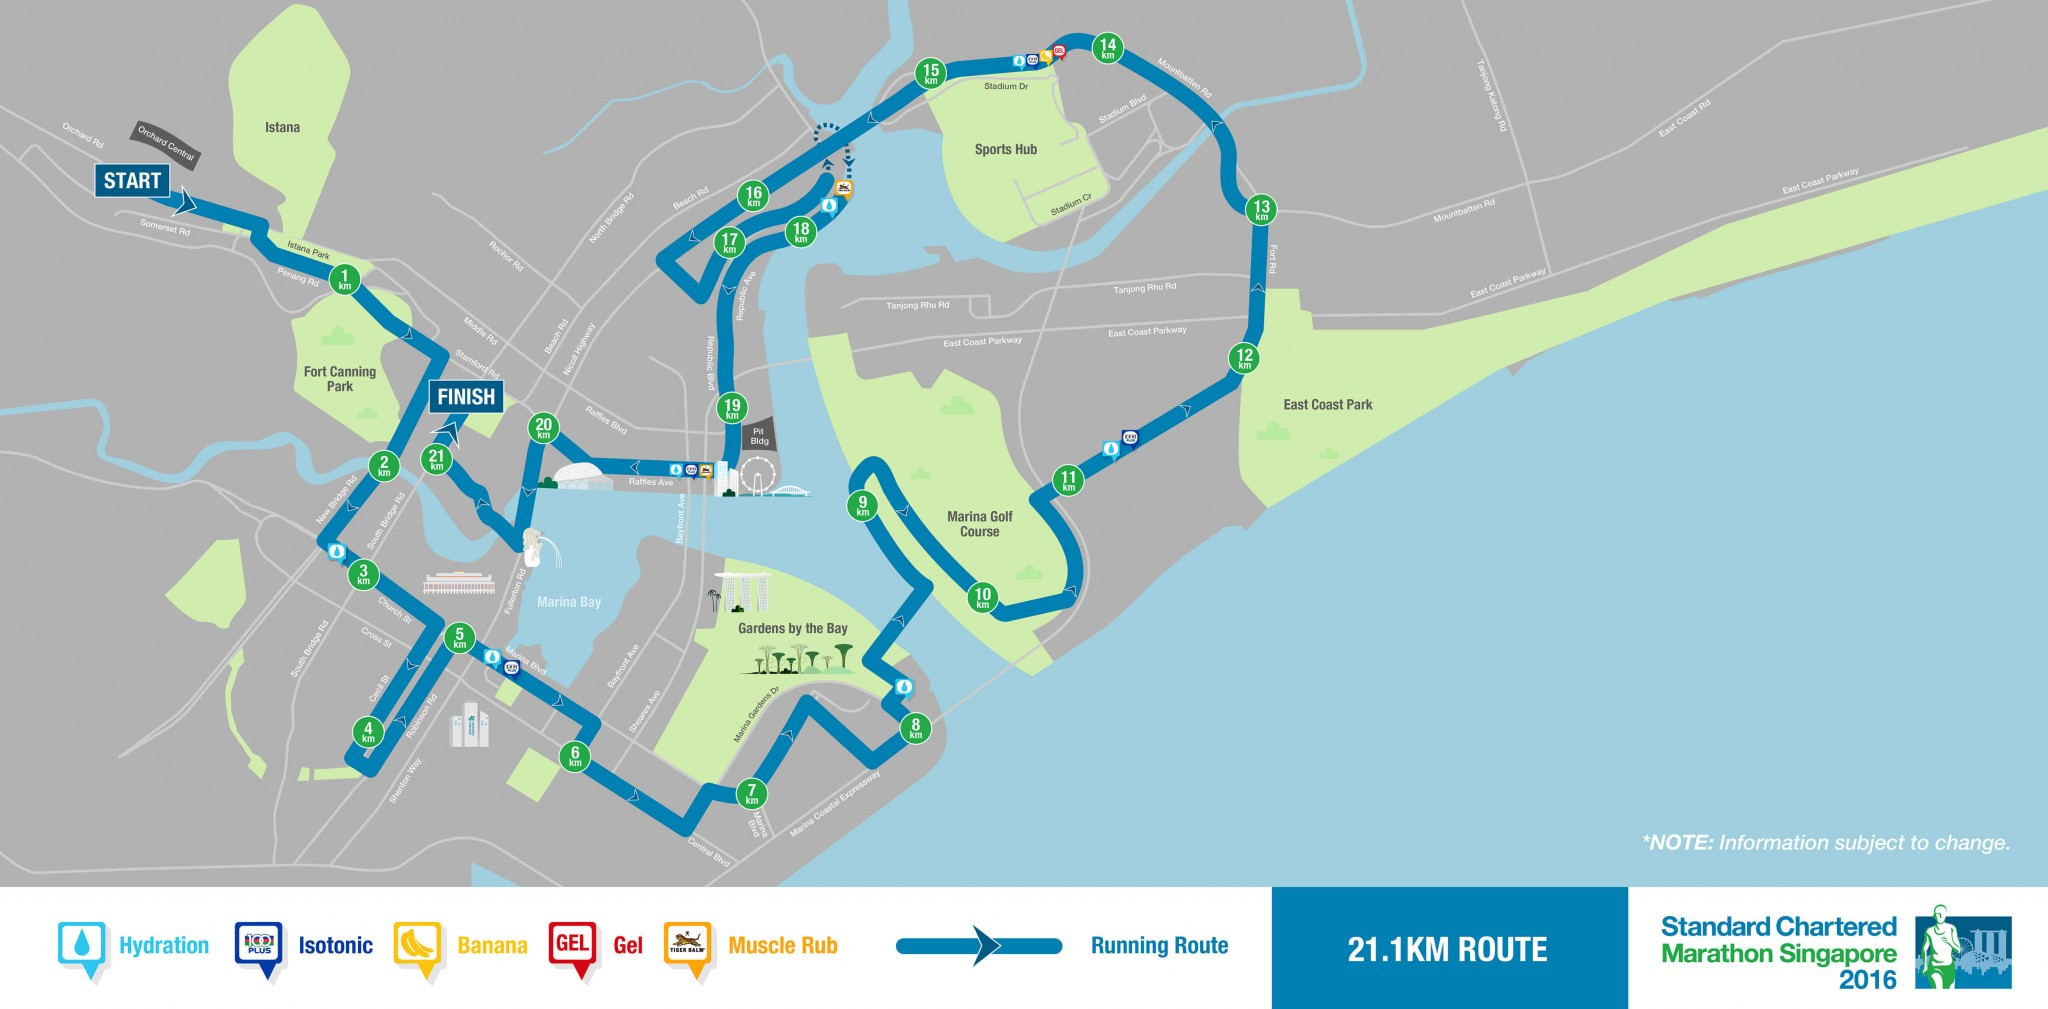 scms16route_21km-new5_web